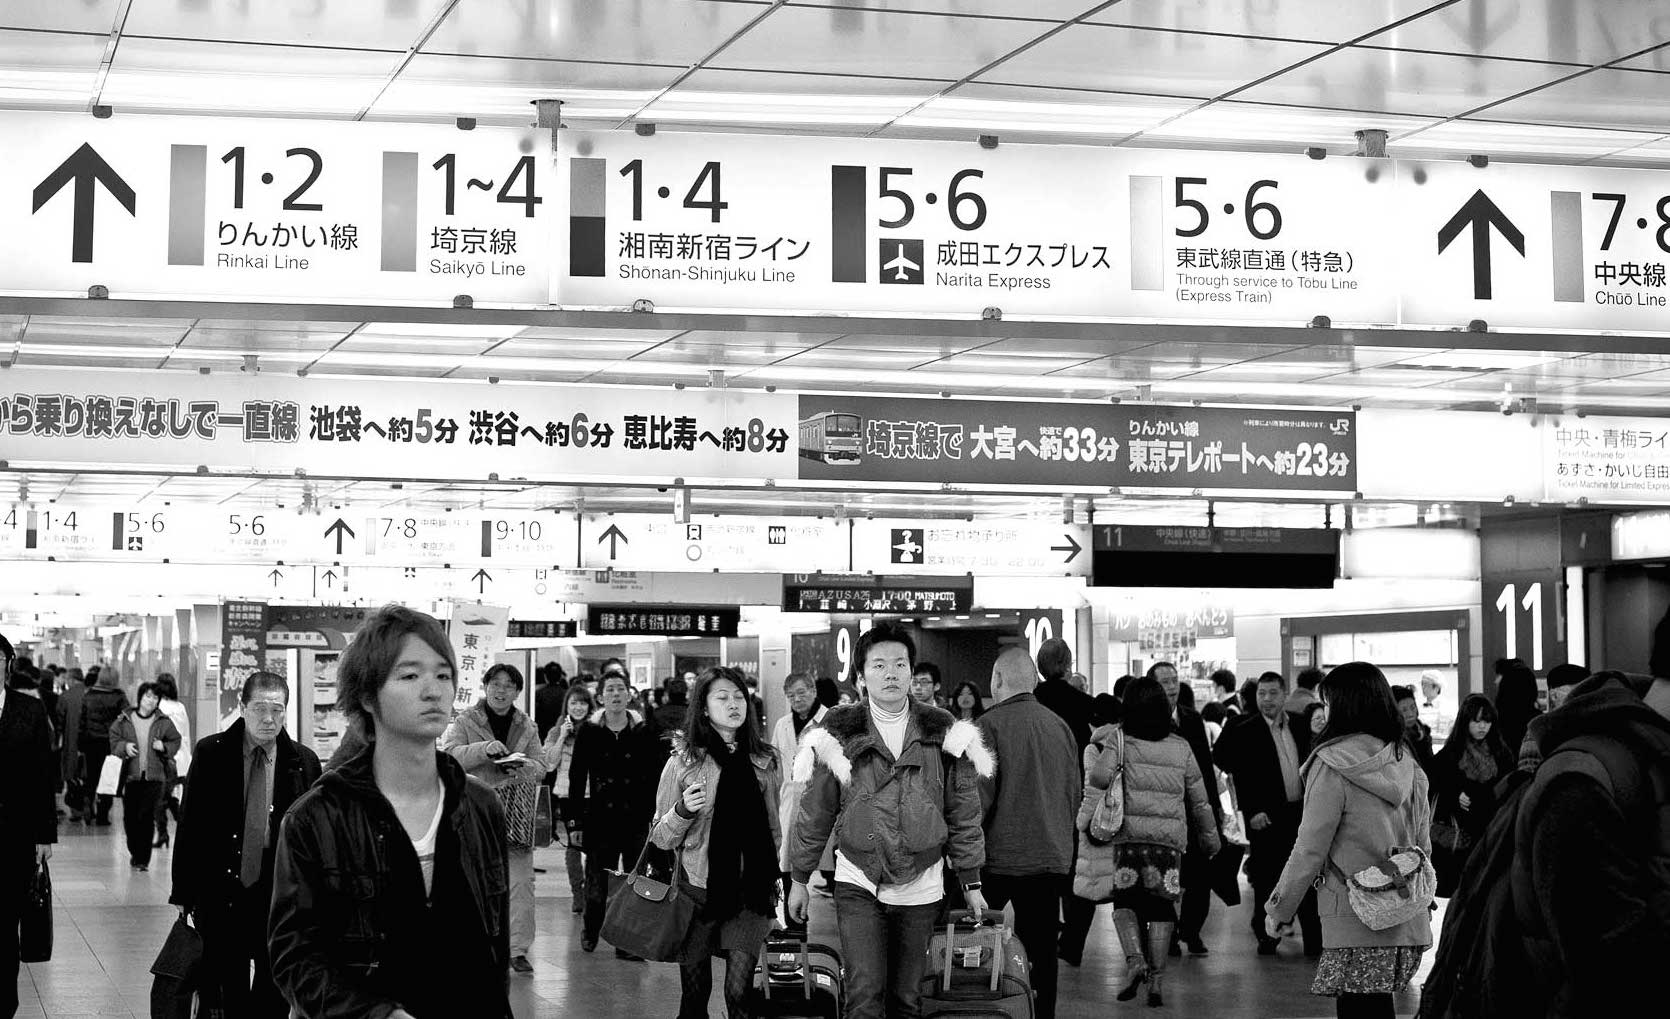 Black and white image of a crowd in Shinjuku station, Tokyo